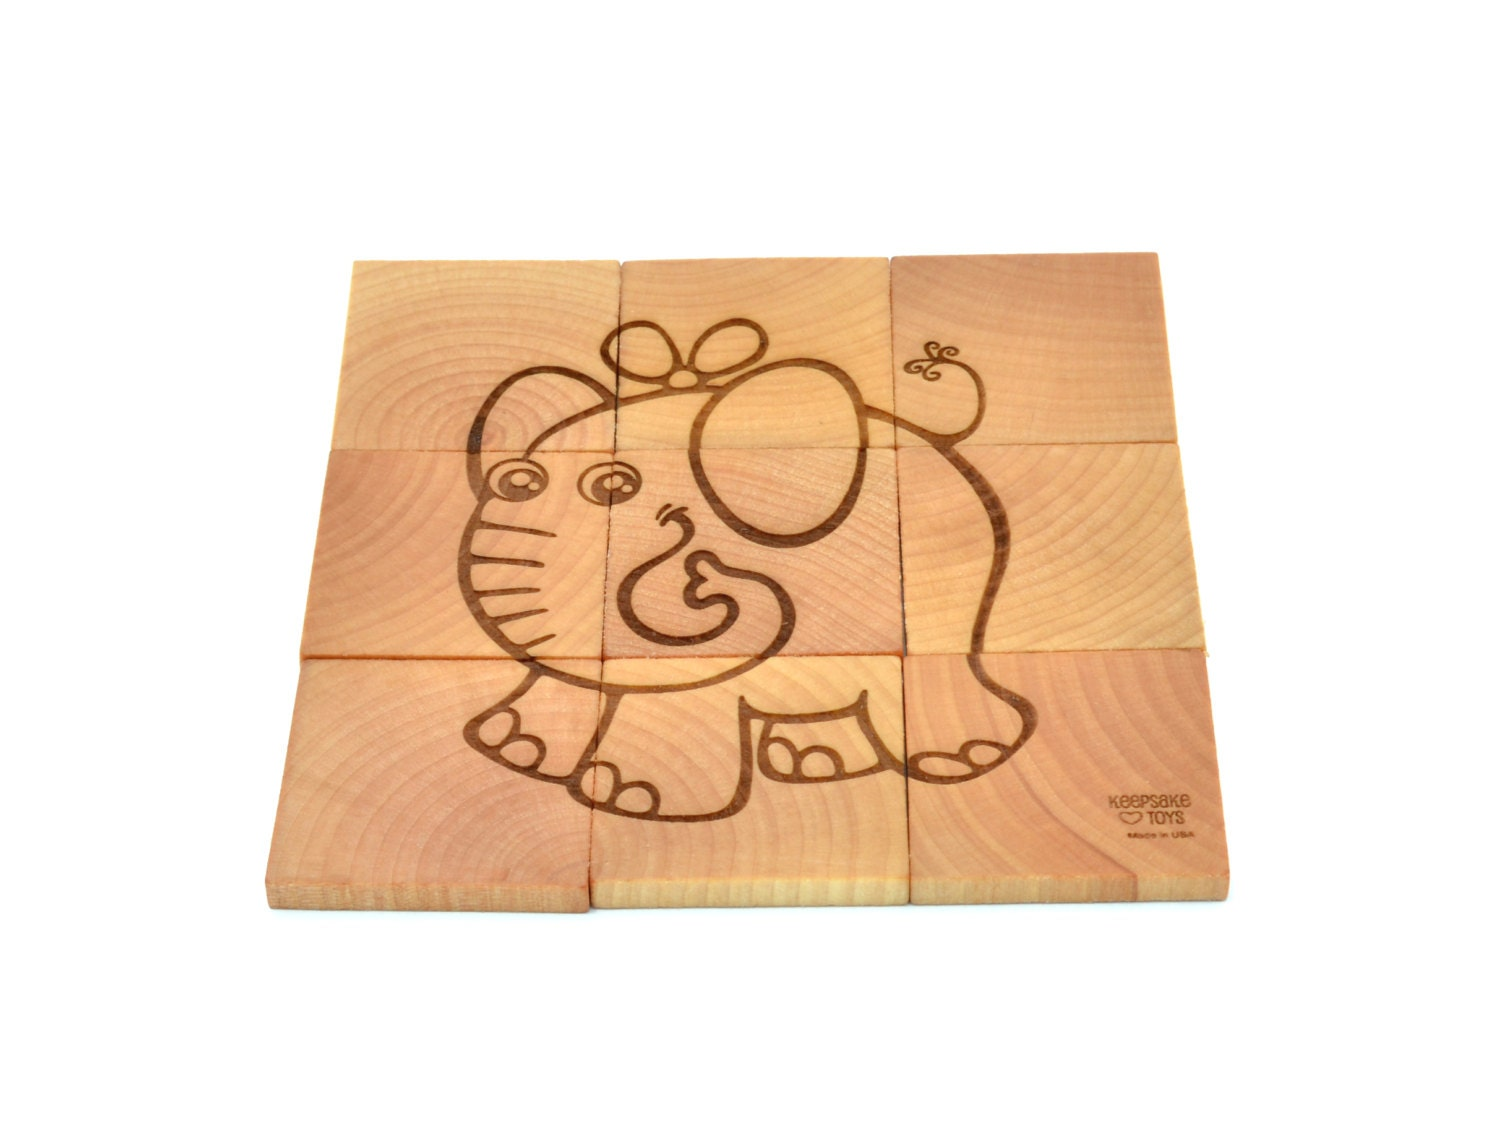 Wooden Puzzle Wooden Toy for Toddler or Preschooler Gift Wooden Toddler Puzzle